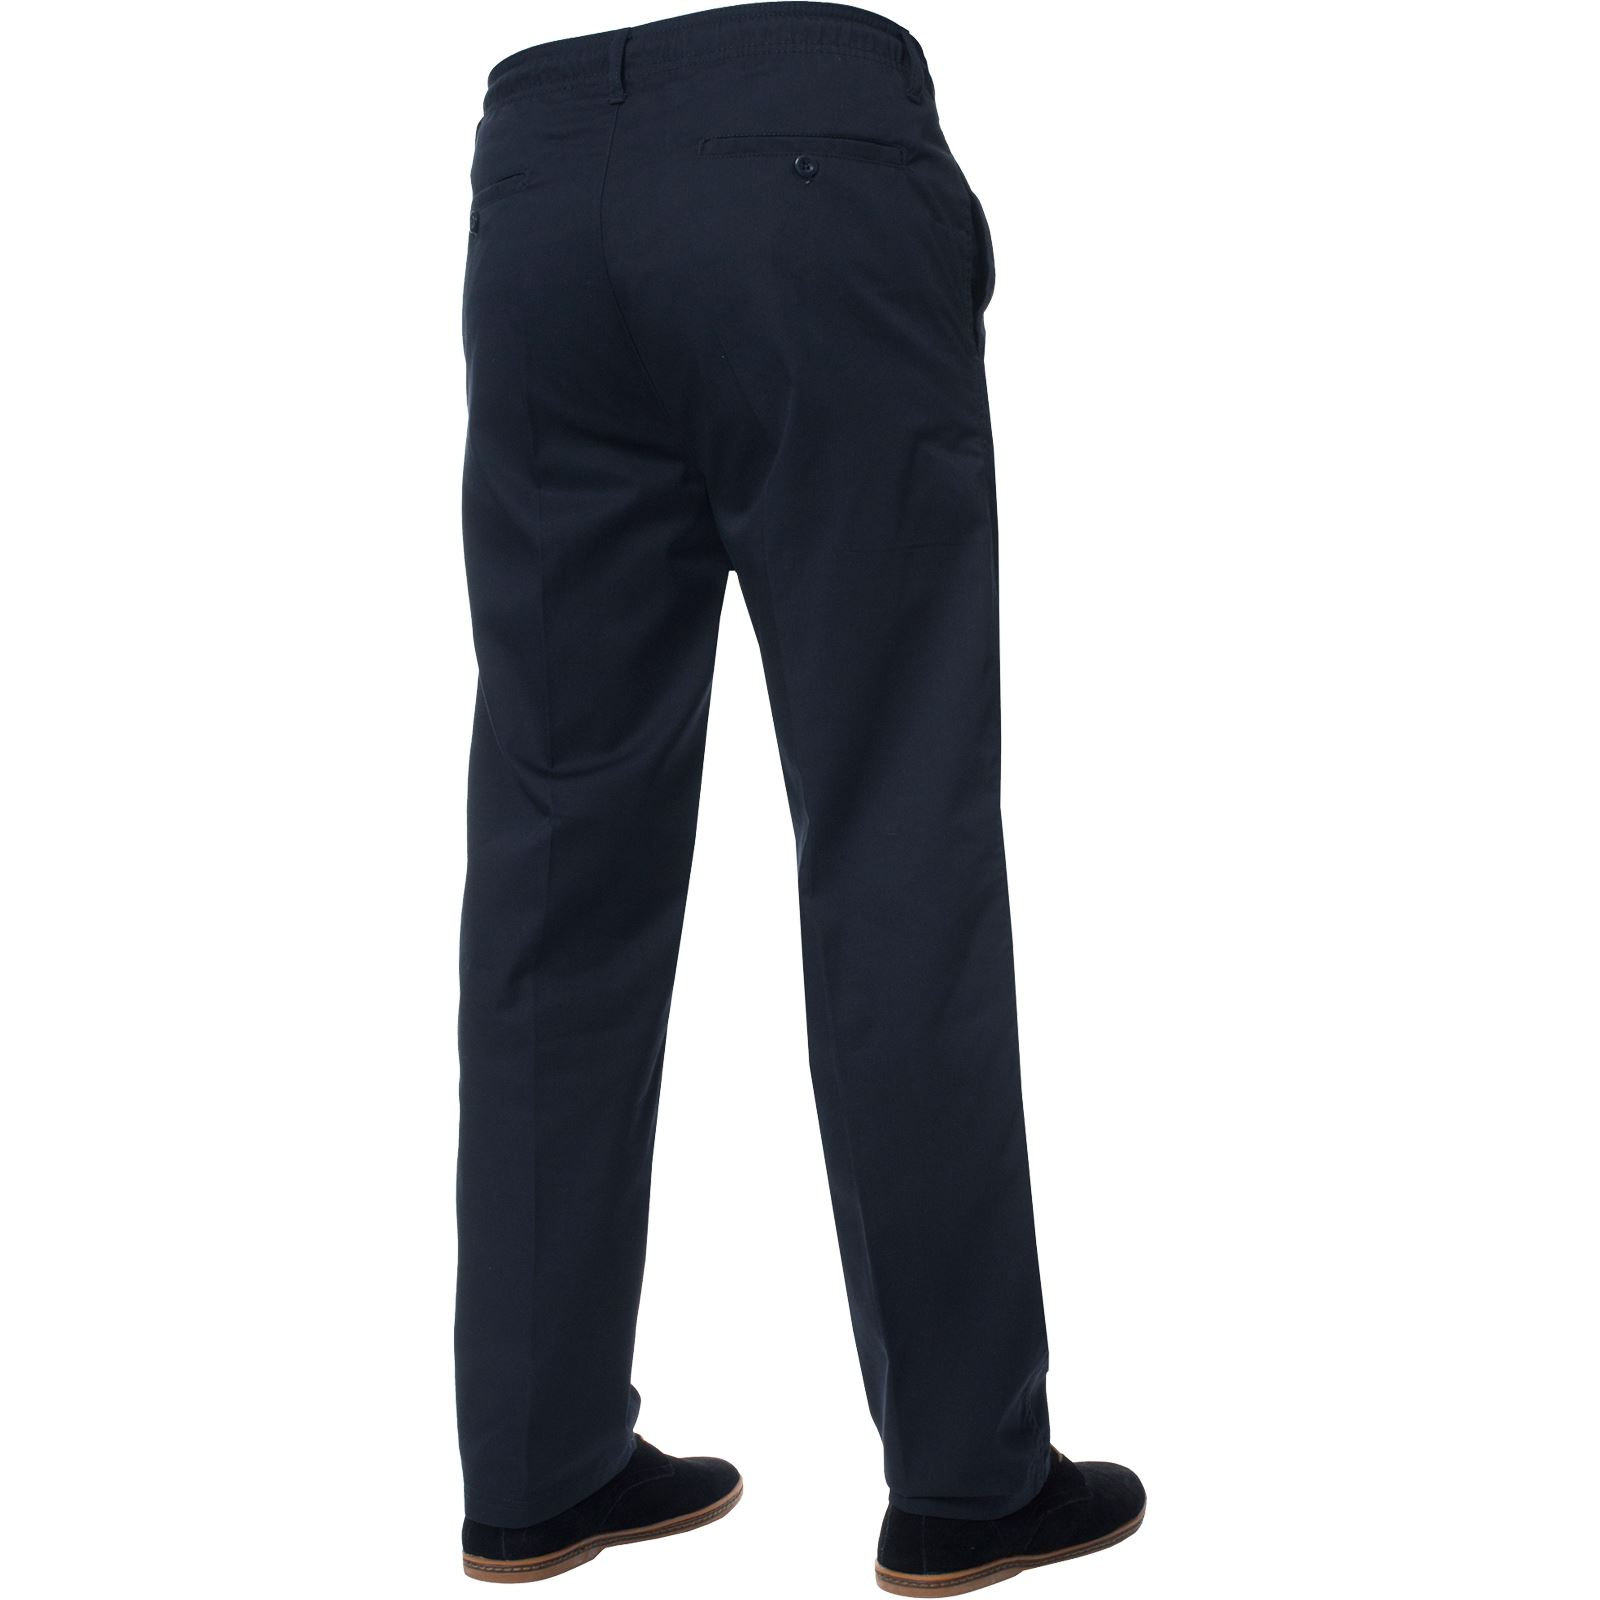 Mens-Rugby-Trousers-Kruze-Elasticated-Waist-Drawstring-Pants-Regular-King-Sizes thumbnail 11